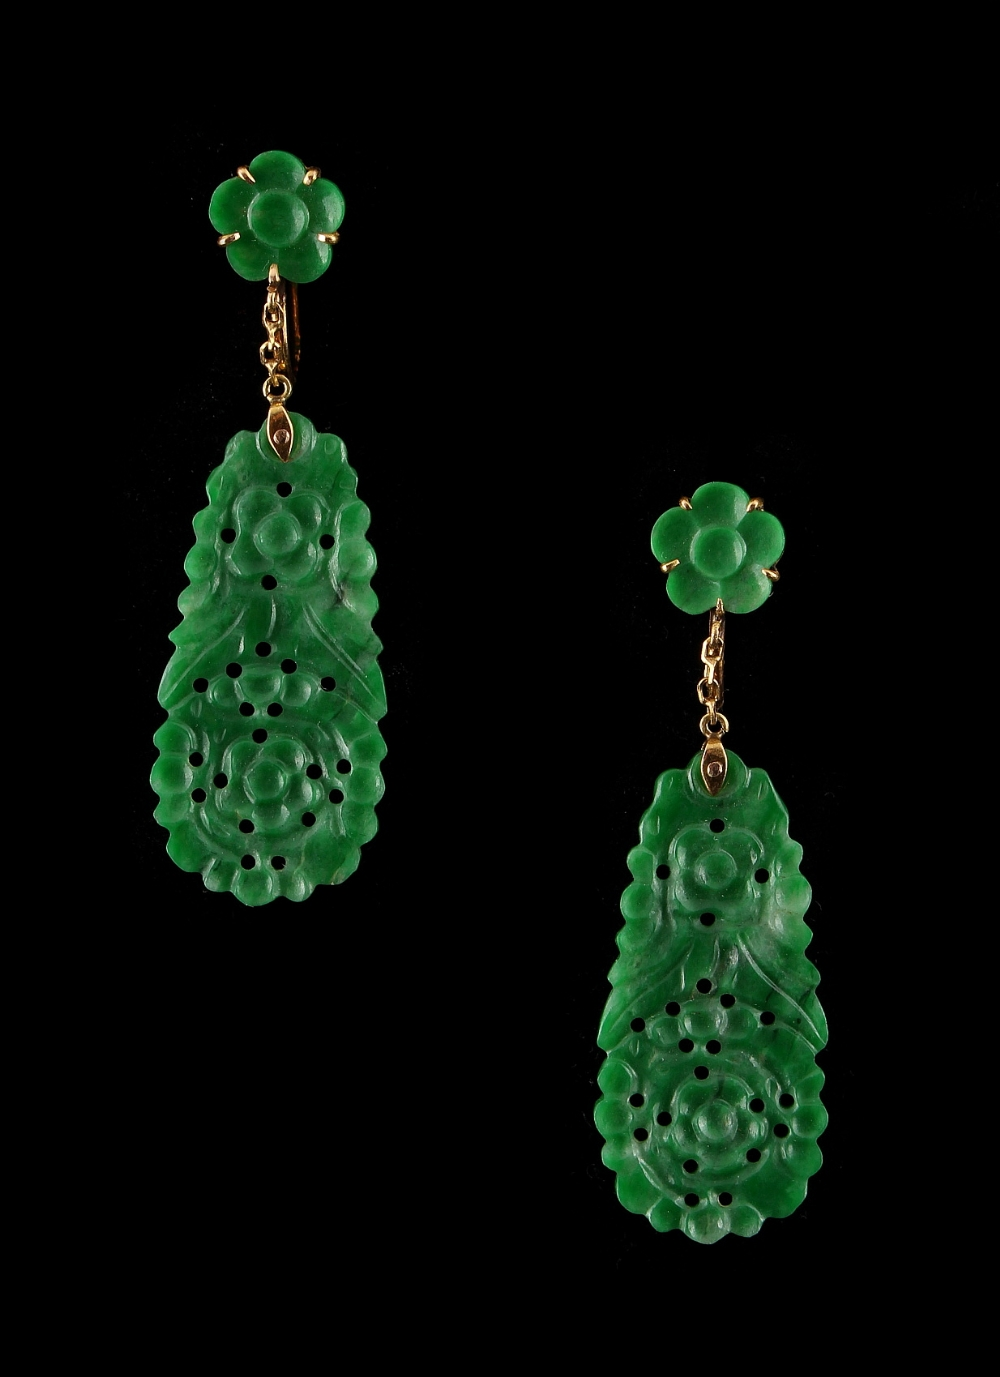 Lot 271 - A pair of Chinese carved jadeite pendant earrings, in 18ct yellow gold mounts, each with carved